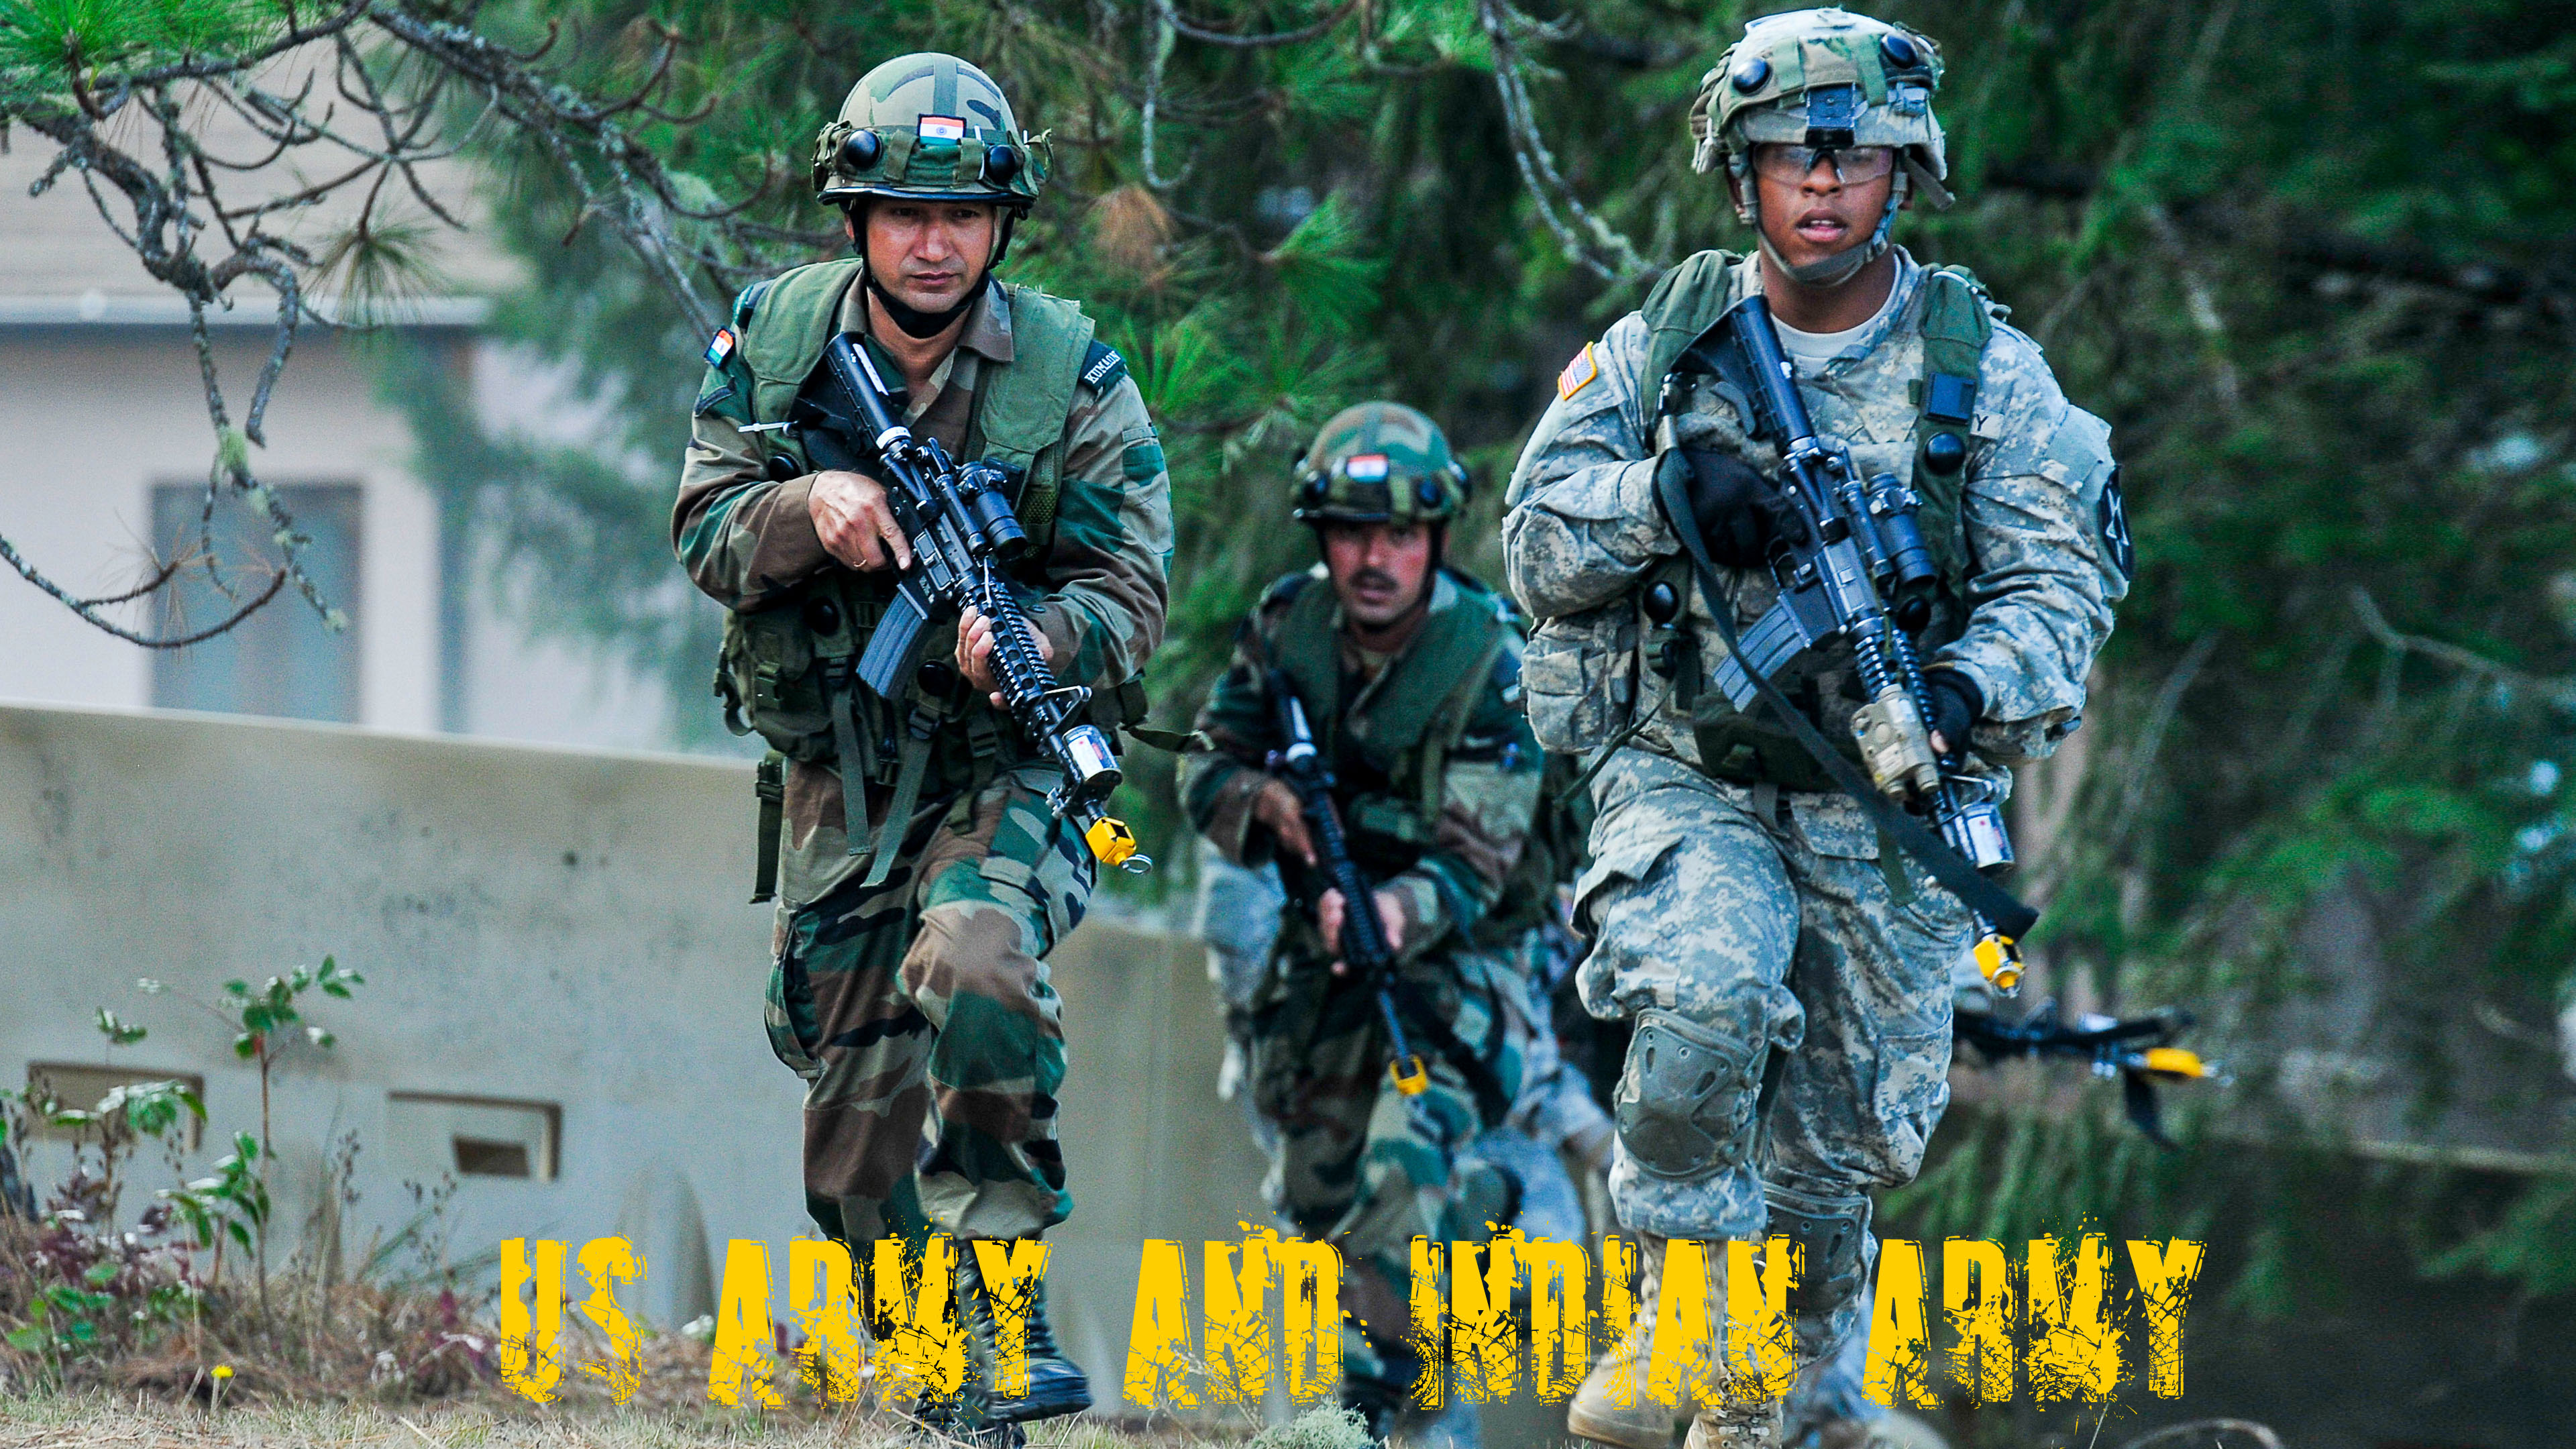 indian army and us army wallpaper hd wallpapers